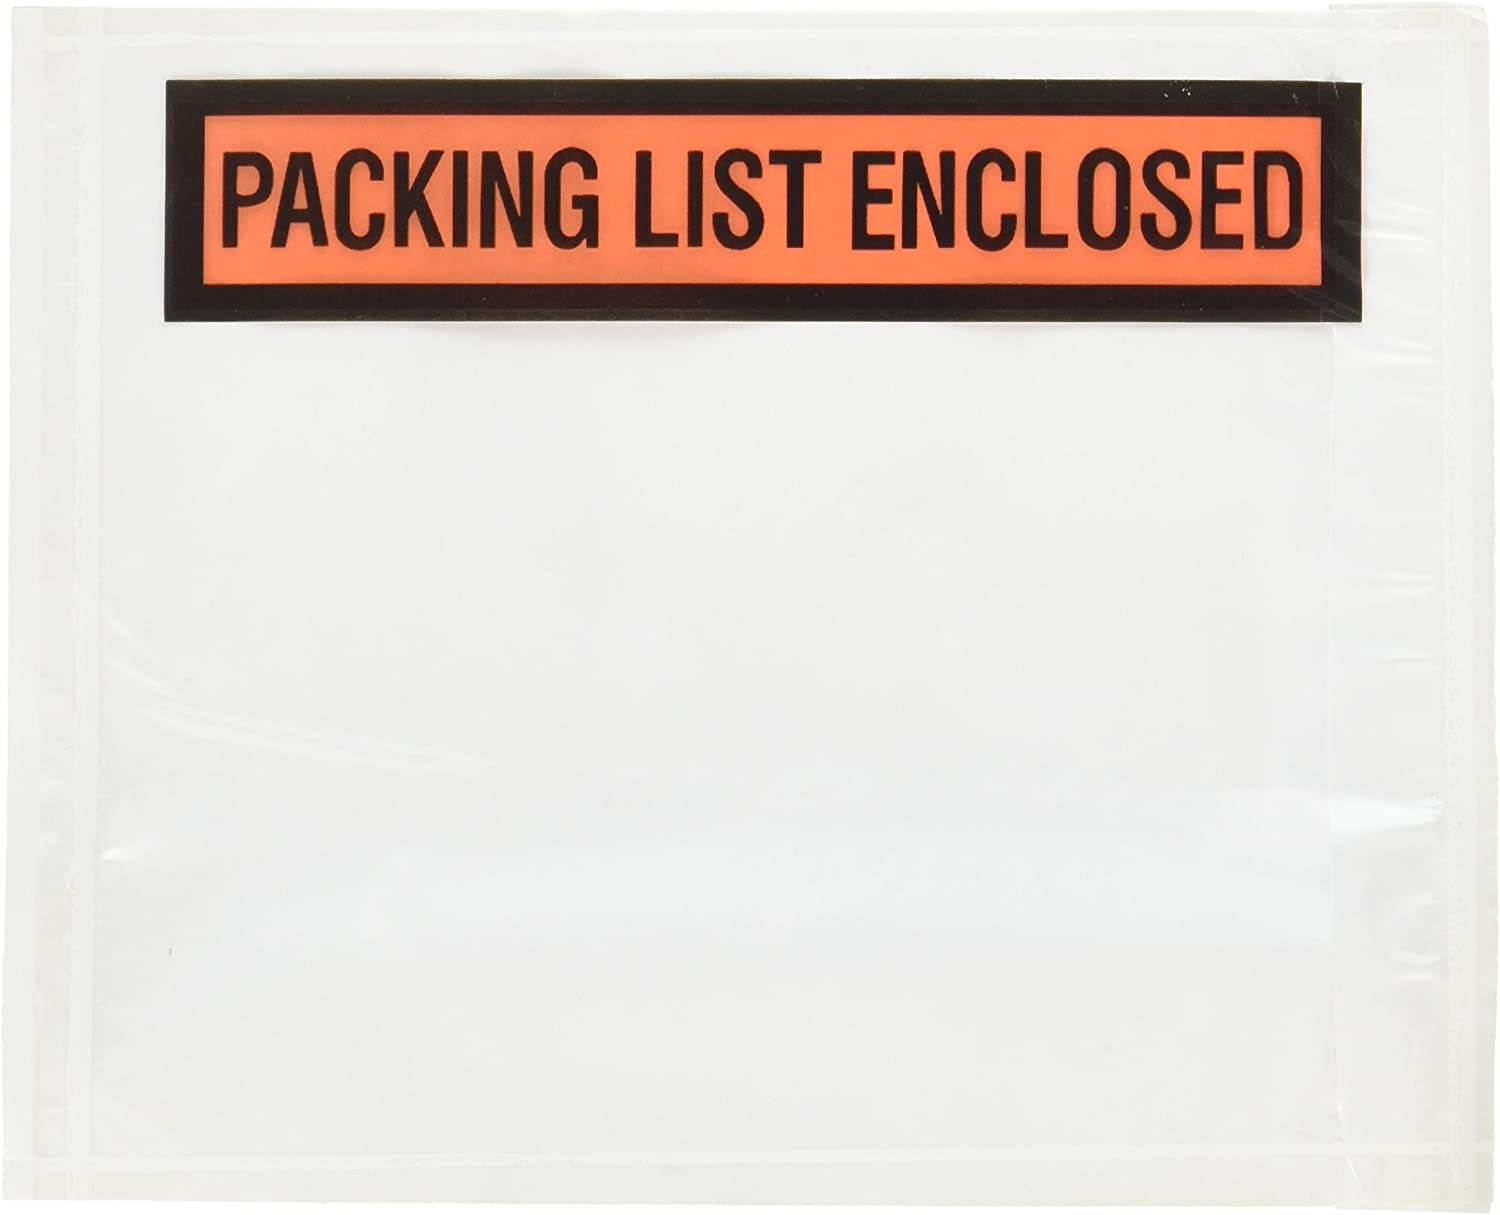 """BOXPQ12 - 4-1/2"""" x 5-1/2"""" Packing List Enclosed Envelopes (1000/case) : Packing Slip Pouch : Office Products"""